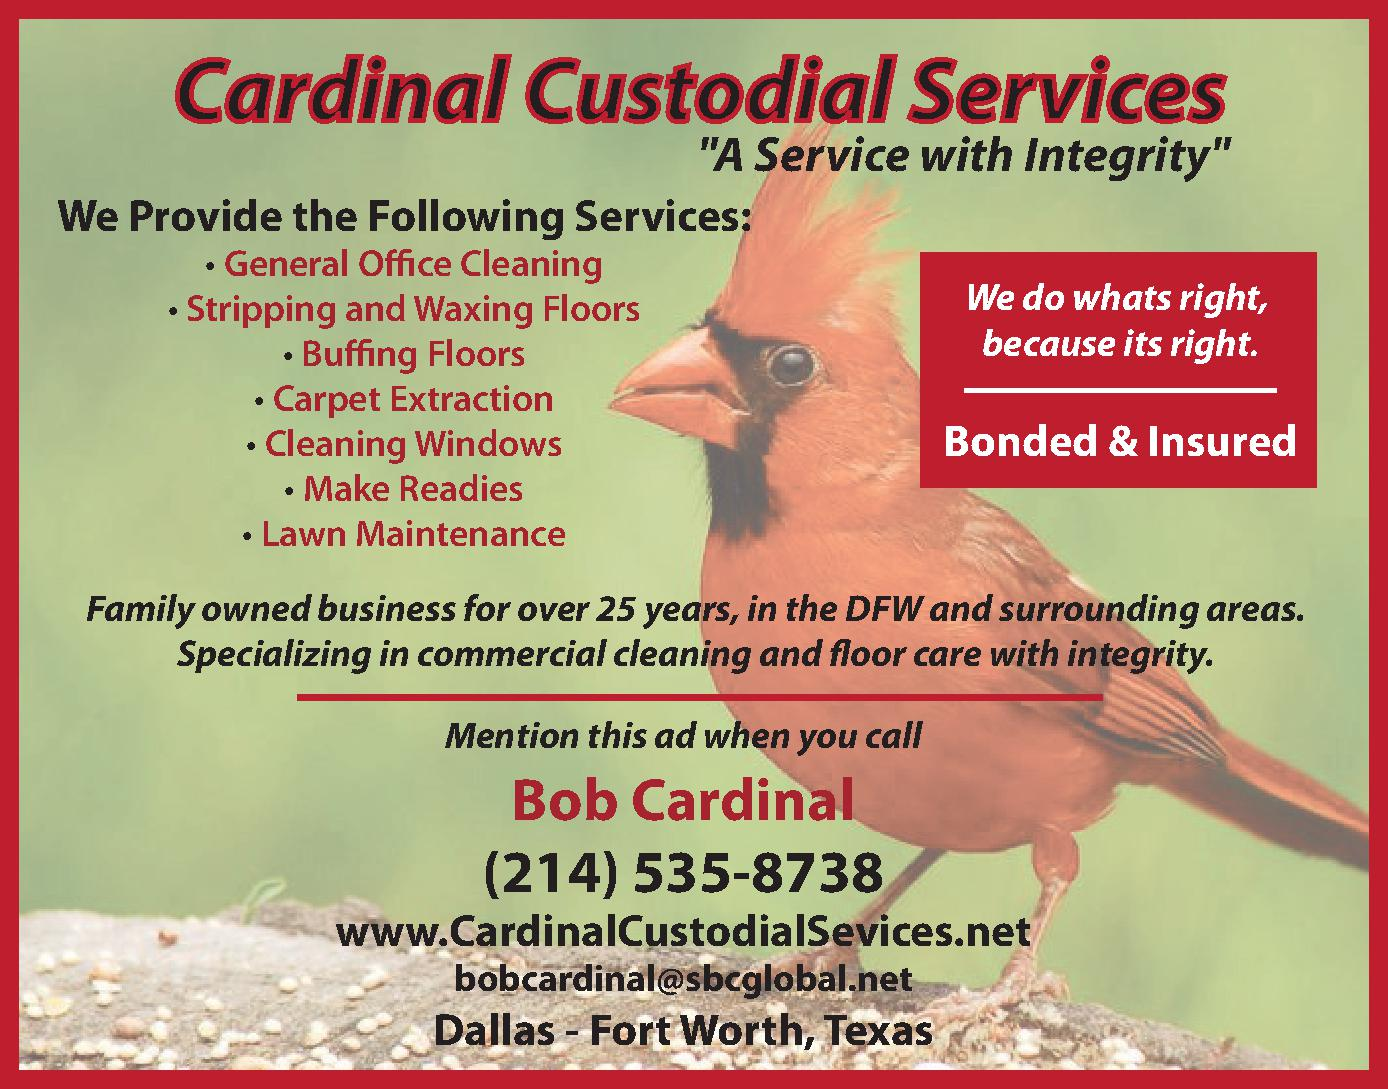 Cardinal Custodial Services